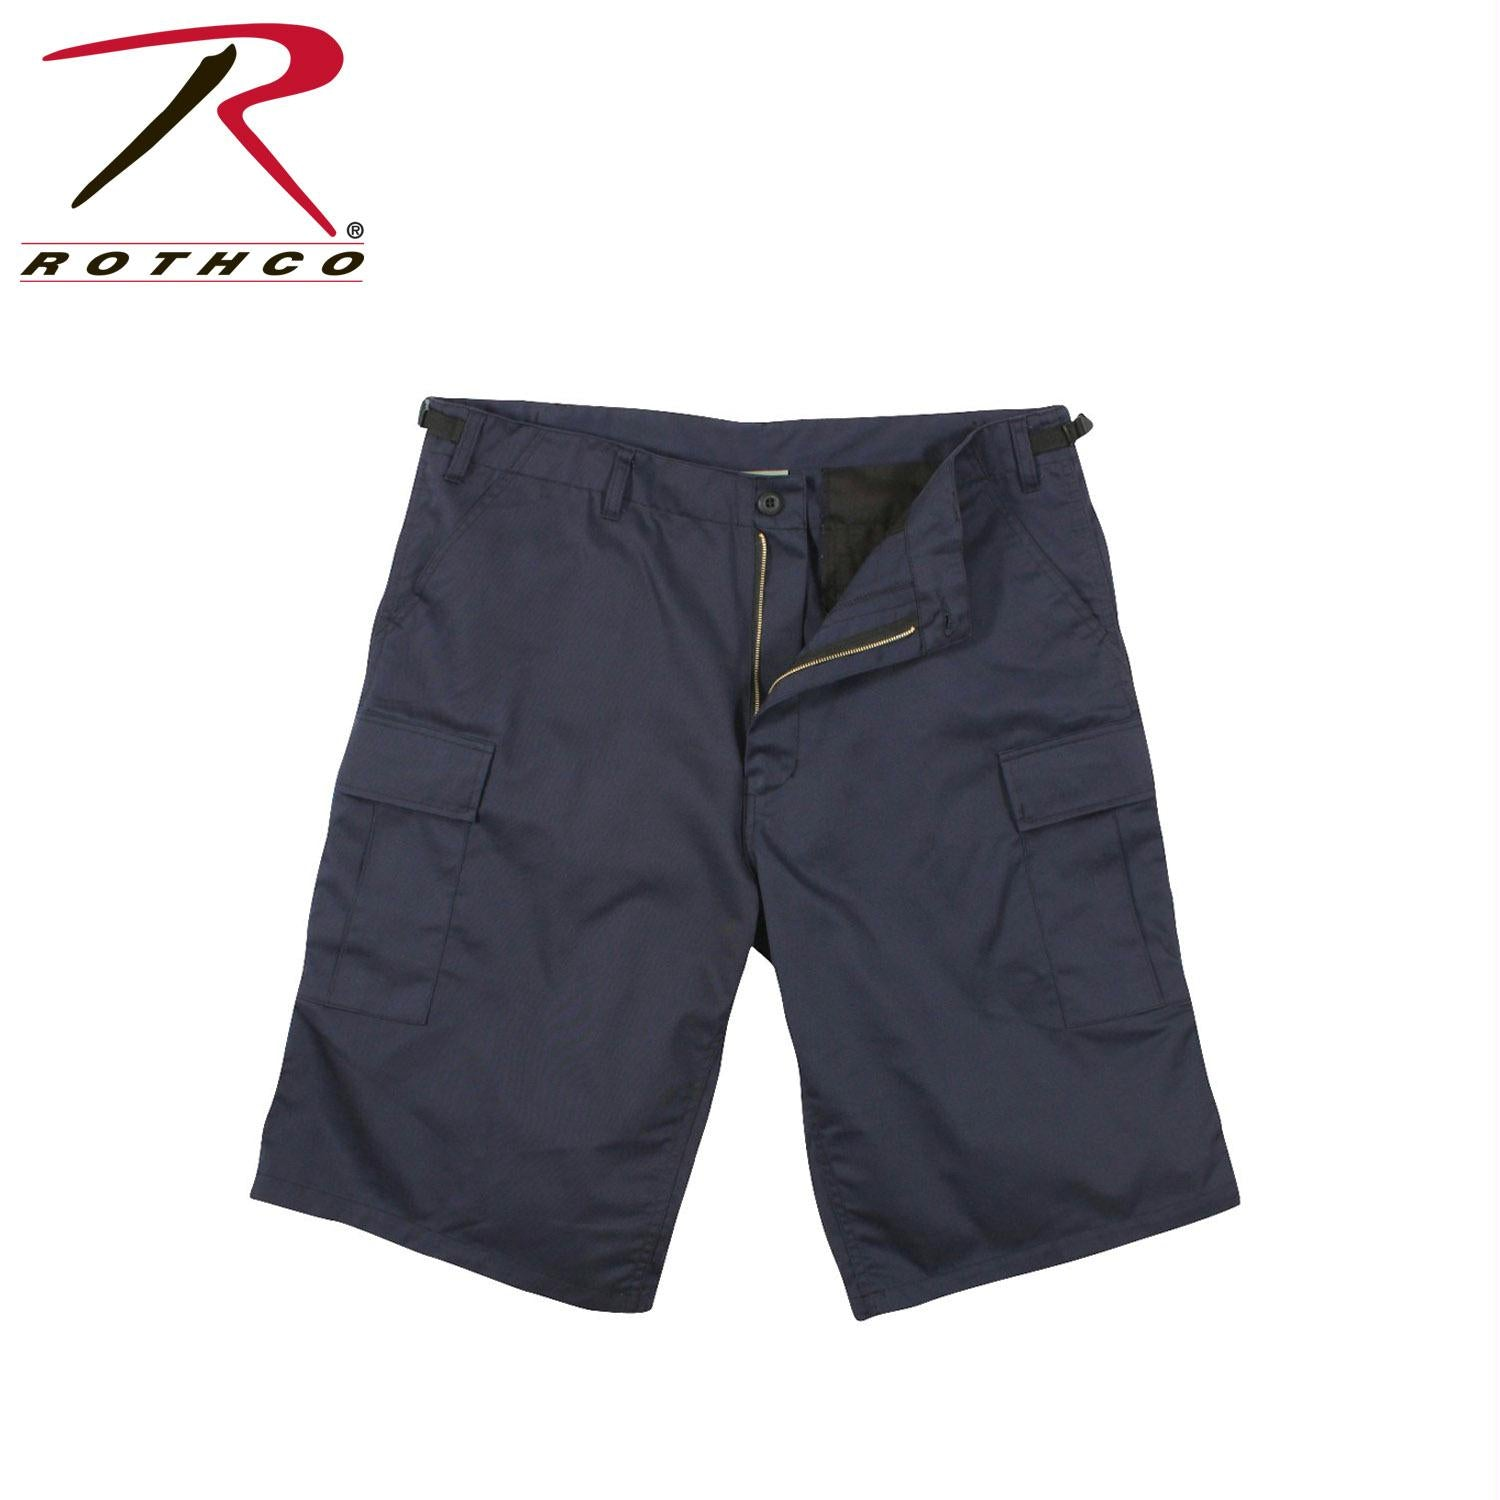 Rothco Long Length BDU Short - Navy Blue / XL